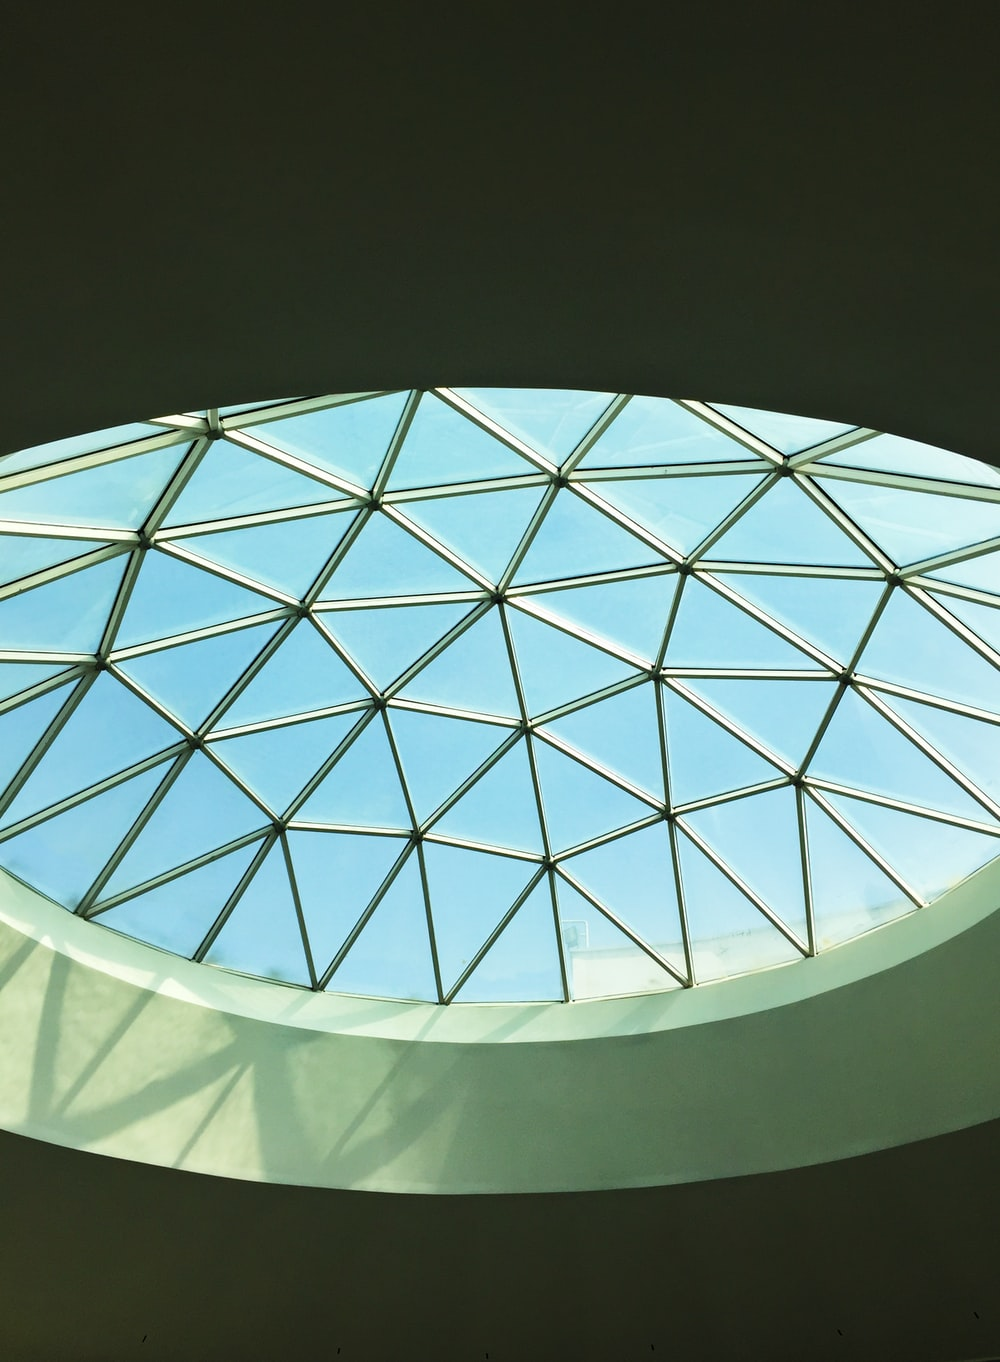 macro photography of ceiling view under blue and white sky